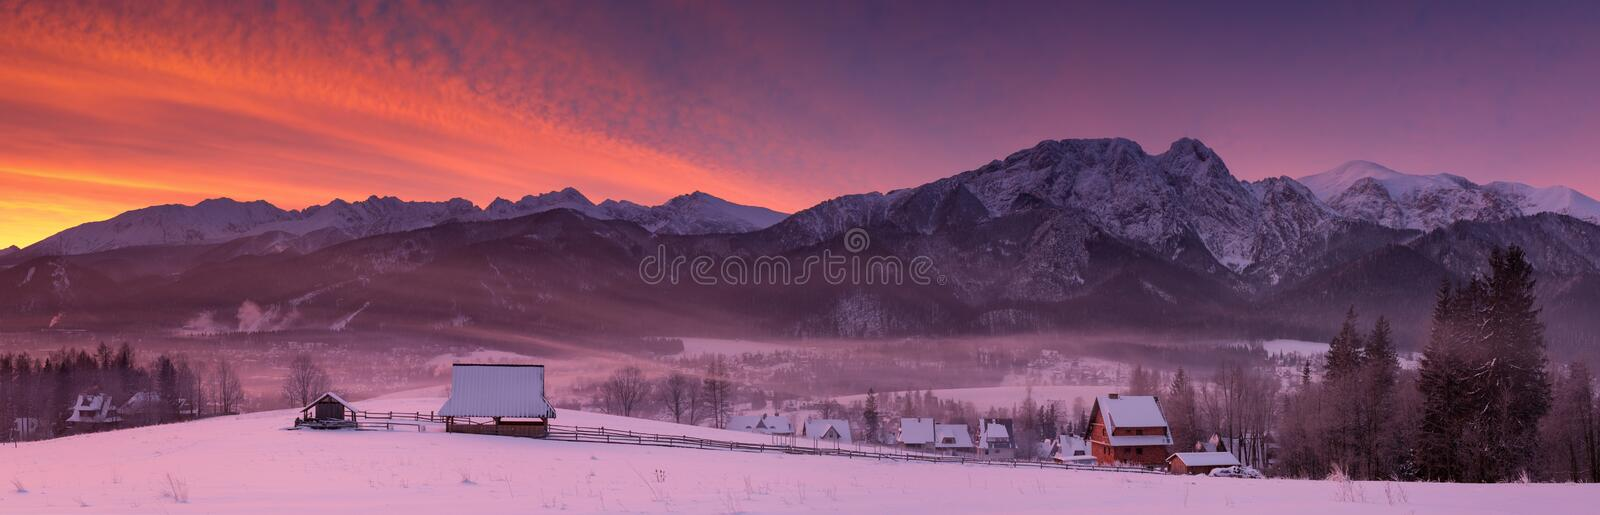 View At Most Famous Polish Ski Resort Zakopane From The Top Of Gubalowka, Against The Background Of Snow-Capped Peaks High Tatras. Winter Tatra Mountains royalty free stock image